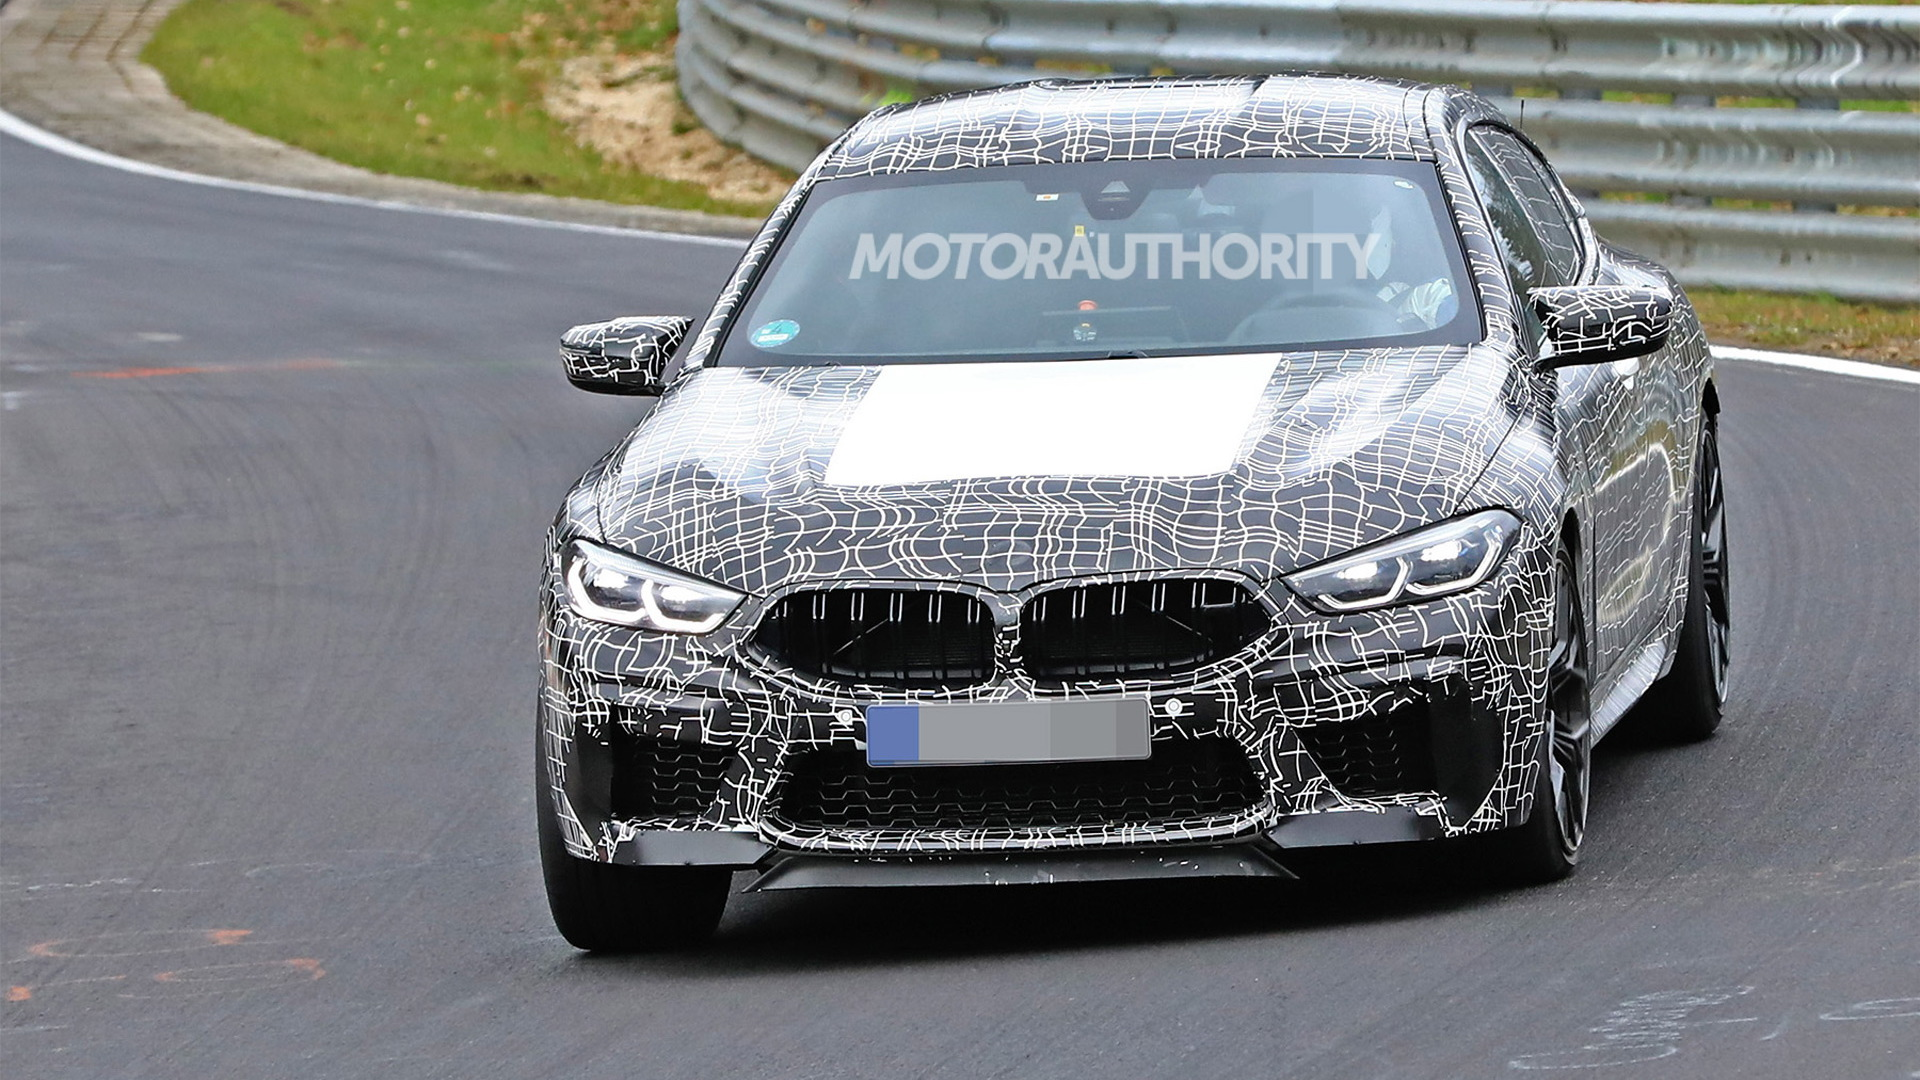 4d47d15d4cd0 2020 BMW M8 Gran Coupe spy shots - Image via S. Baldauf SB-